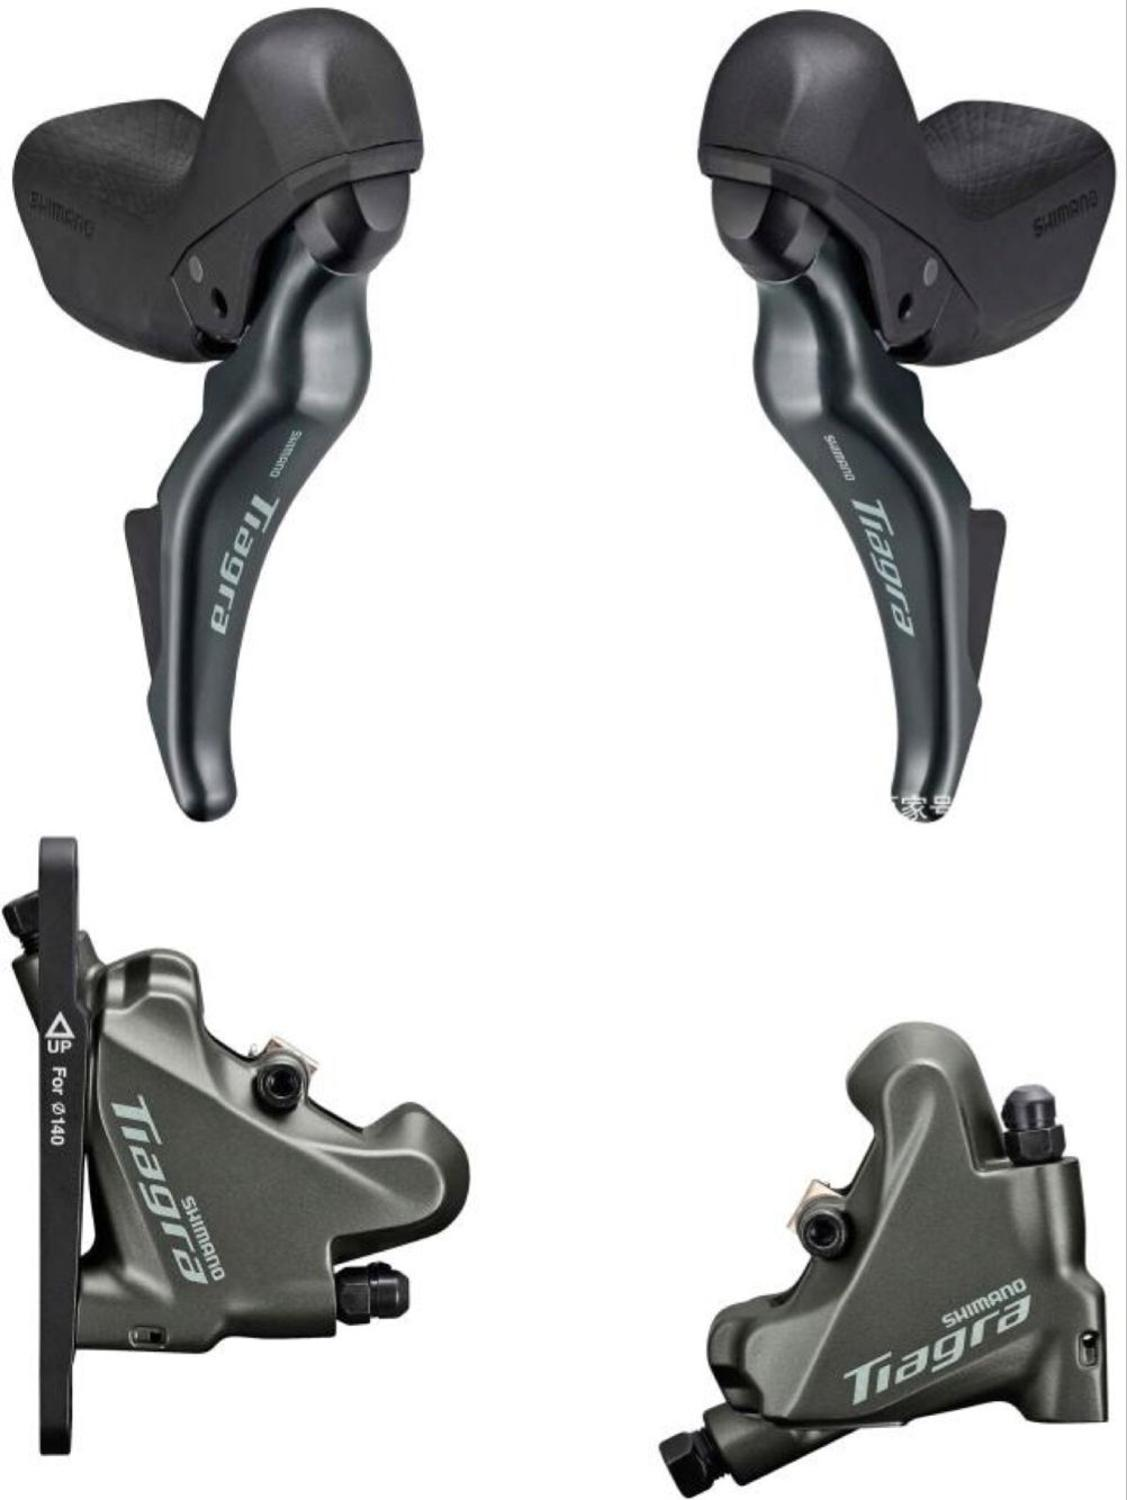 New Shimano Tiagra BR-4770 Flat Mount Hydraulic Disc Brake Caliper Front Black